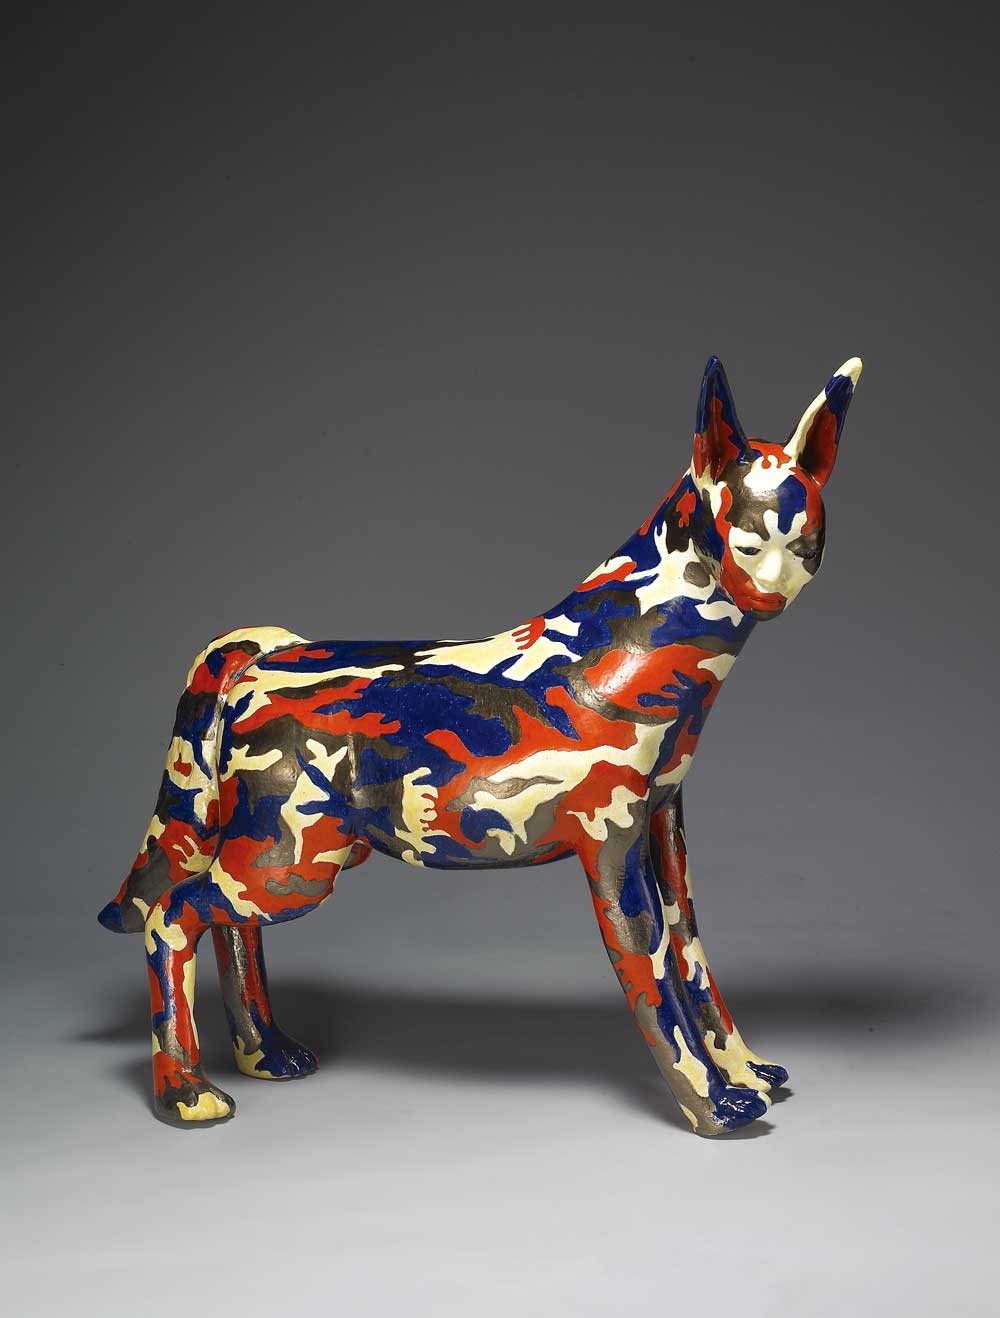 2009-FUTURE-CAMOUGLAGE-ANIMAL_4_39X94X110